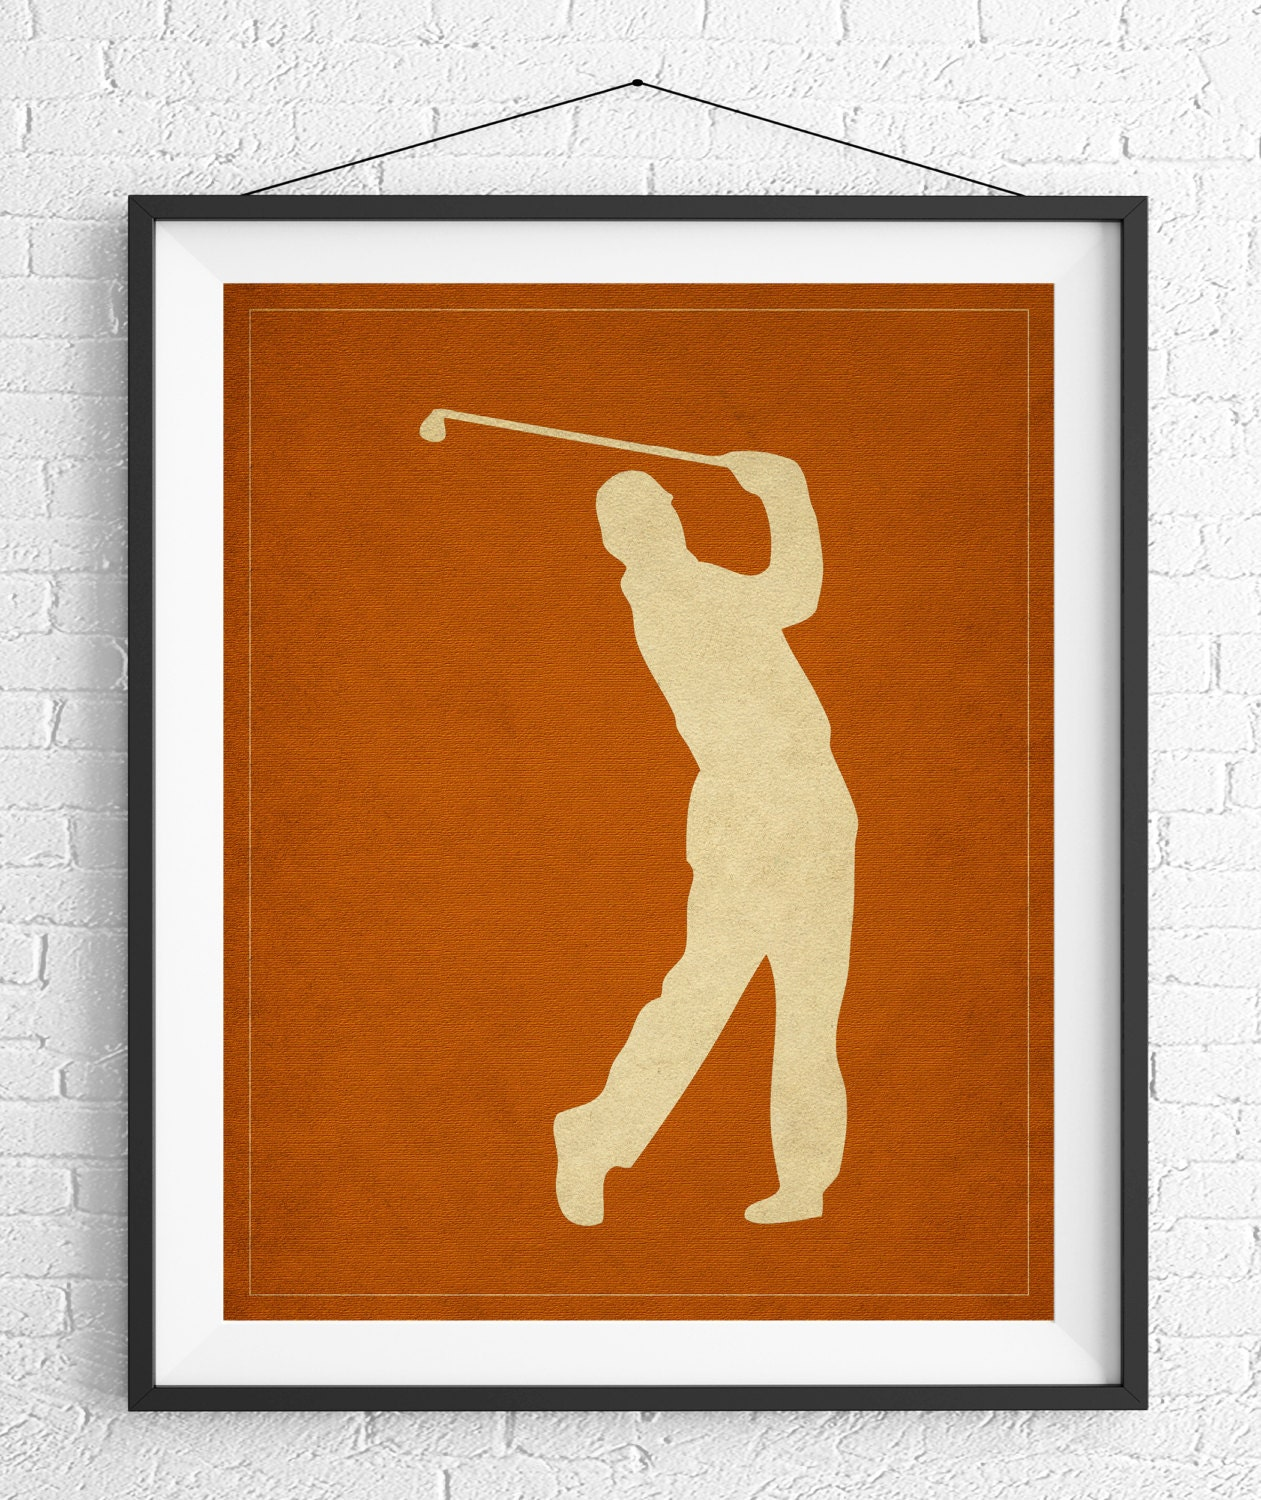 Golf Art, Golf Gifts For Men, Golf Decor, Golf Print, Gift For Golfers,  Office Wall Art, Man Cave Art, Sports Wall Decor, Gifts For Him, Men